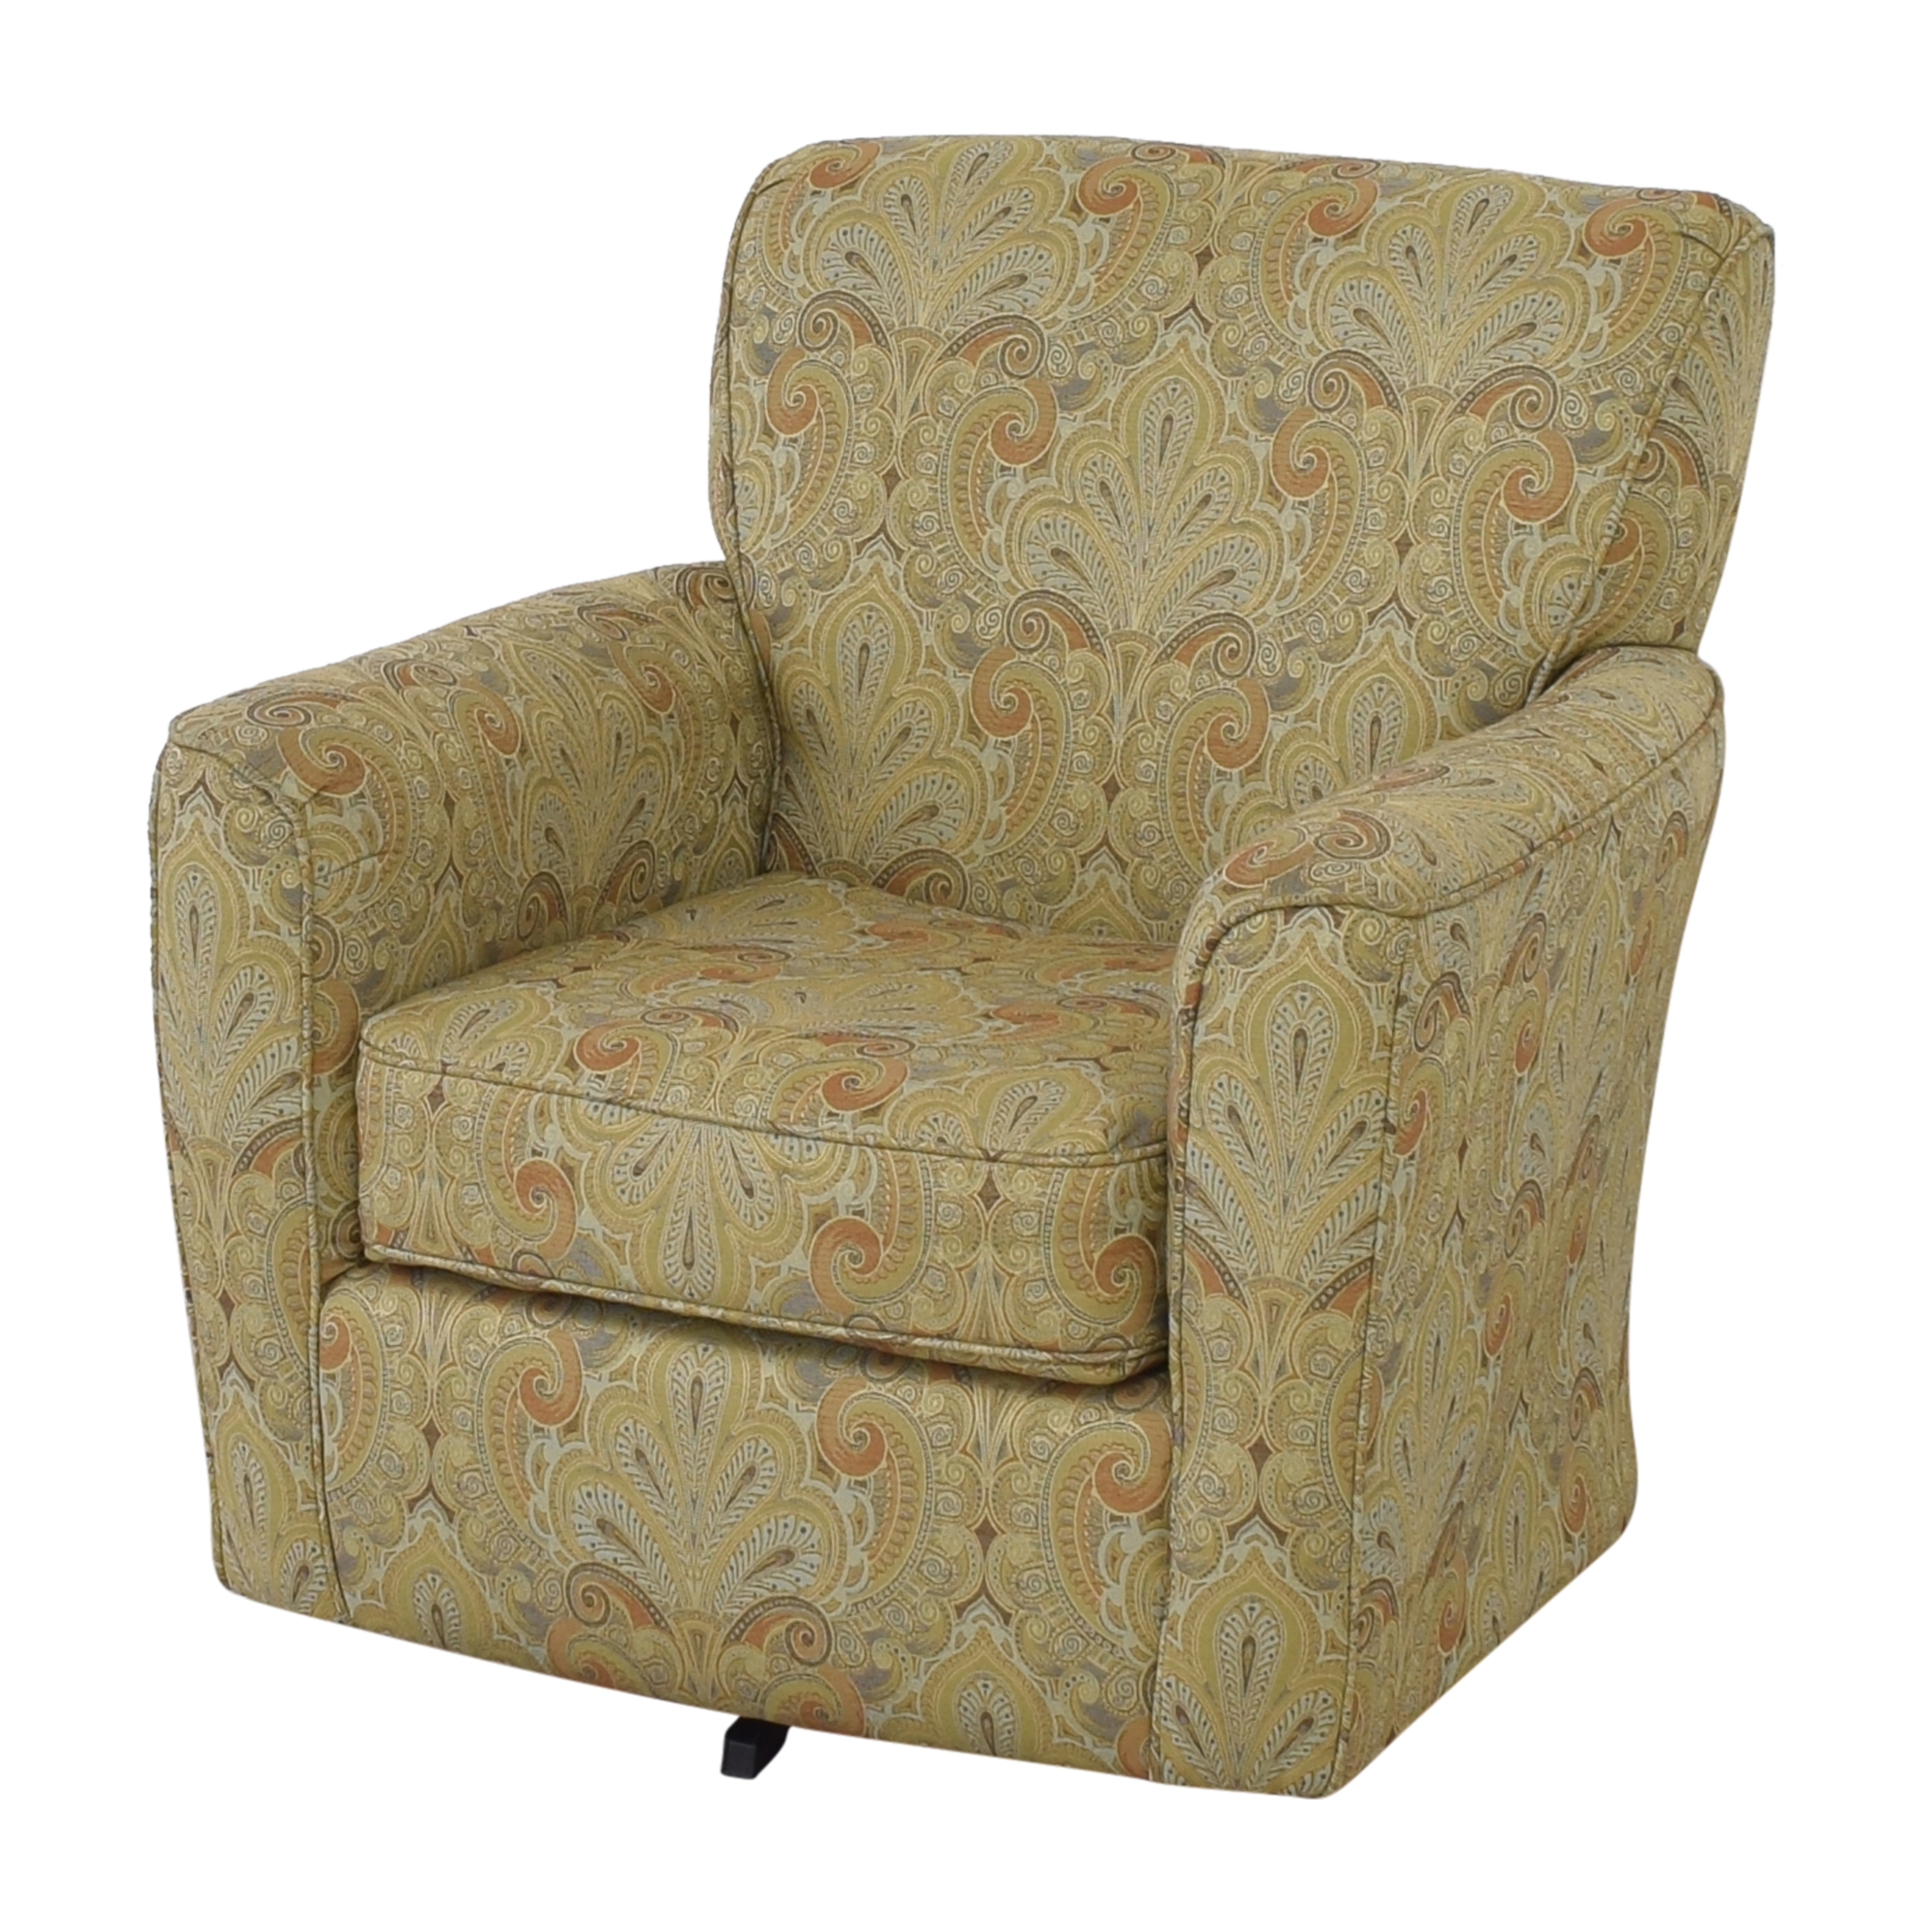 buy Raymour & Flanigan Swivel Chair Raymour & Flanigan Accent Chairs